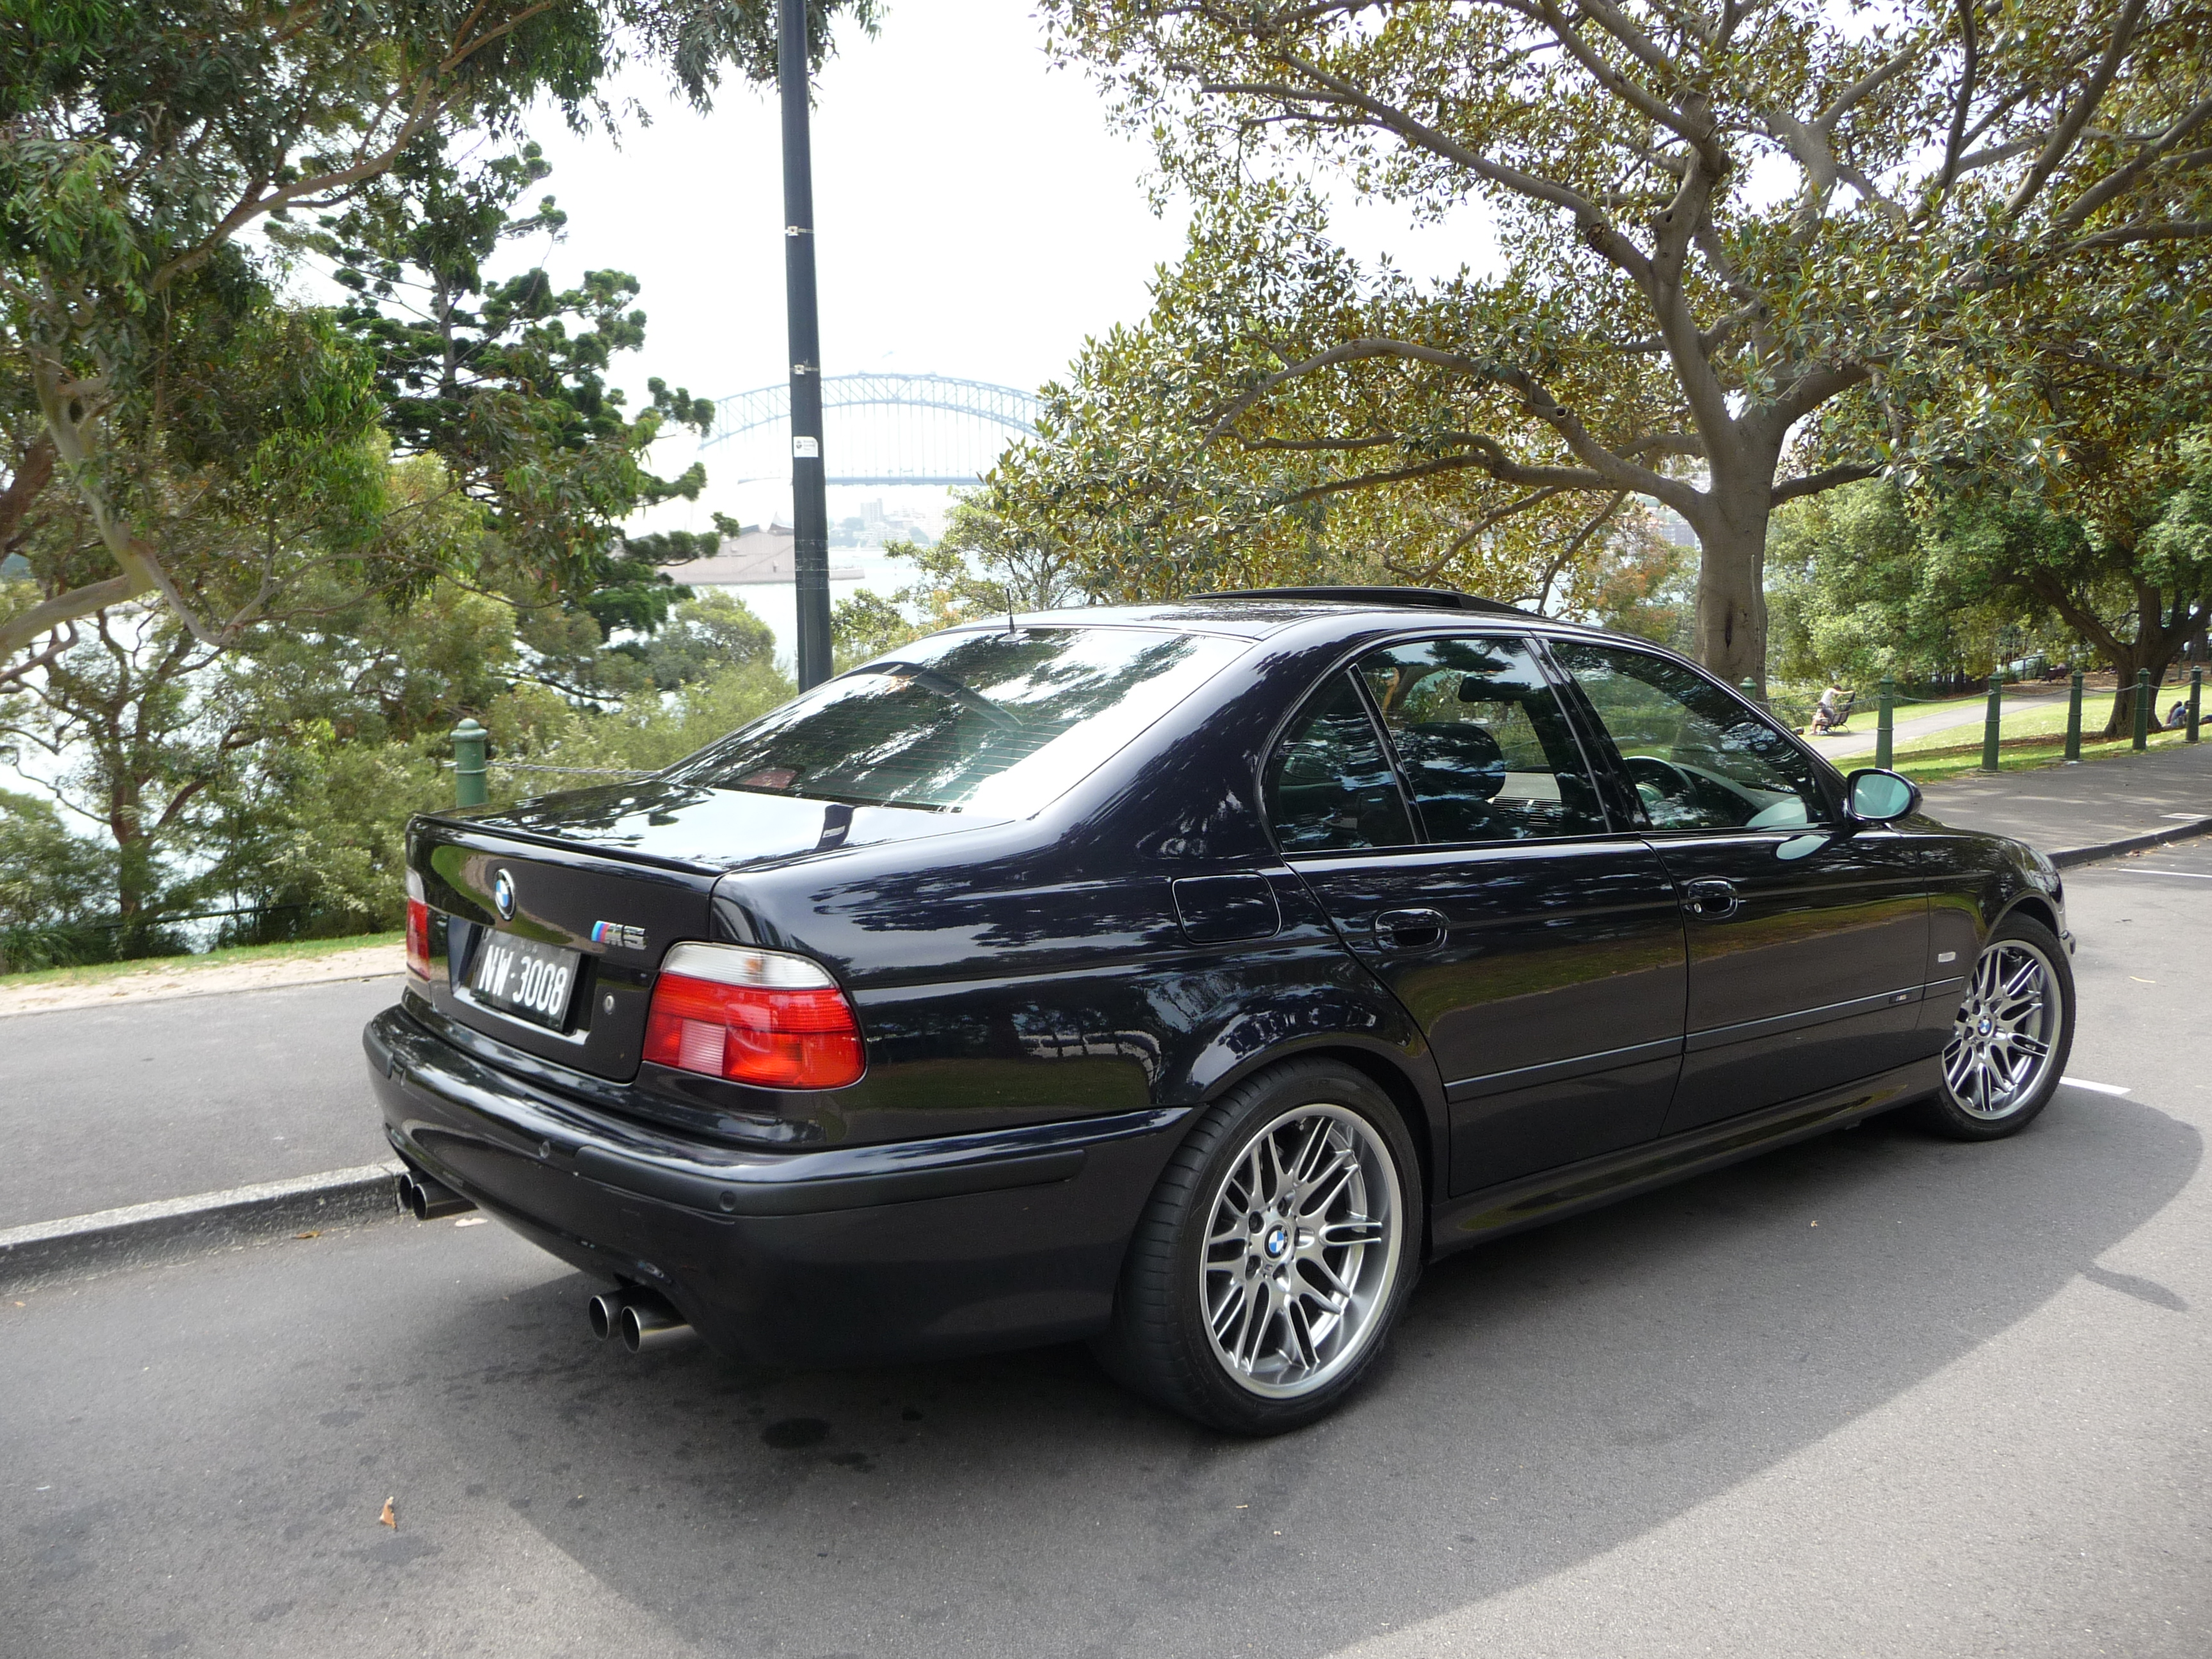 My Carbon Black bare metal respray - progress photos-m5-painted-033.jpg